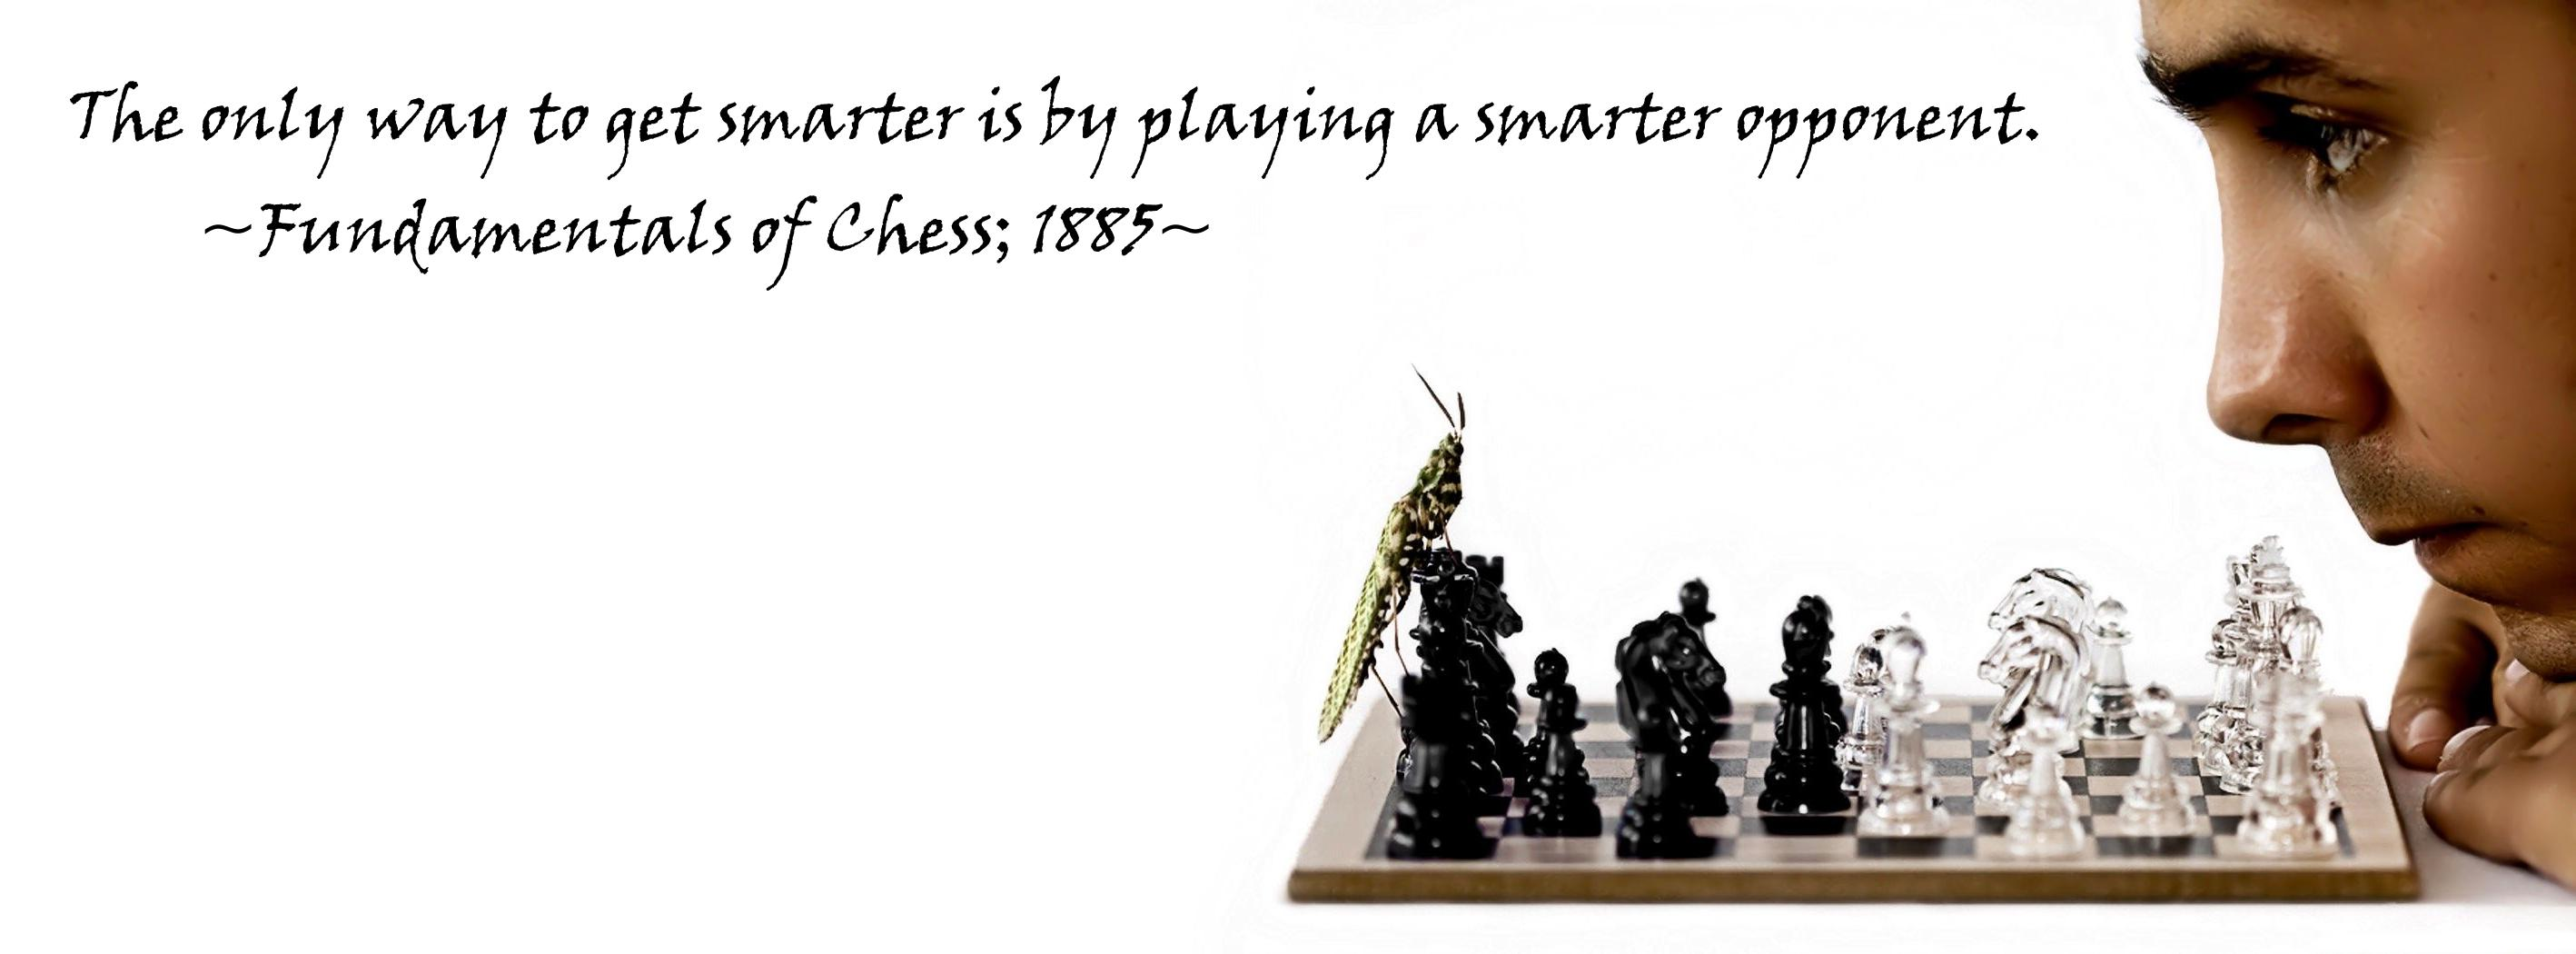 Chess quote #6